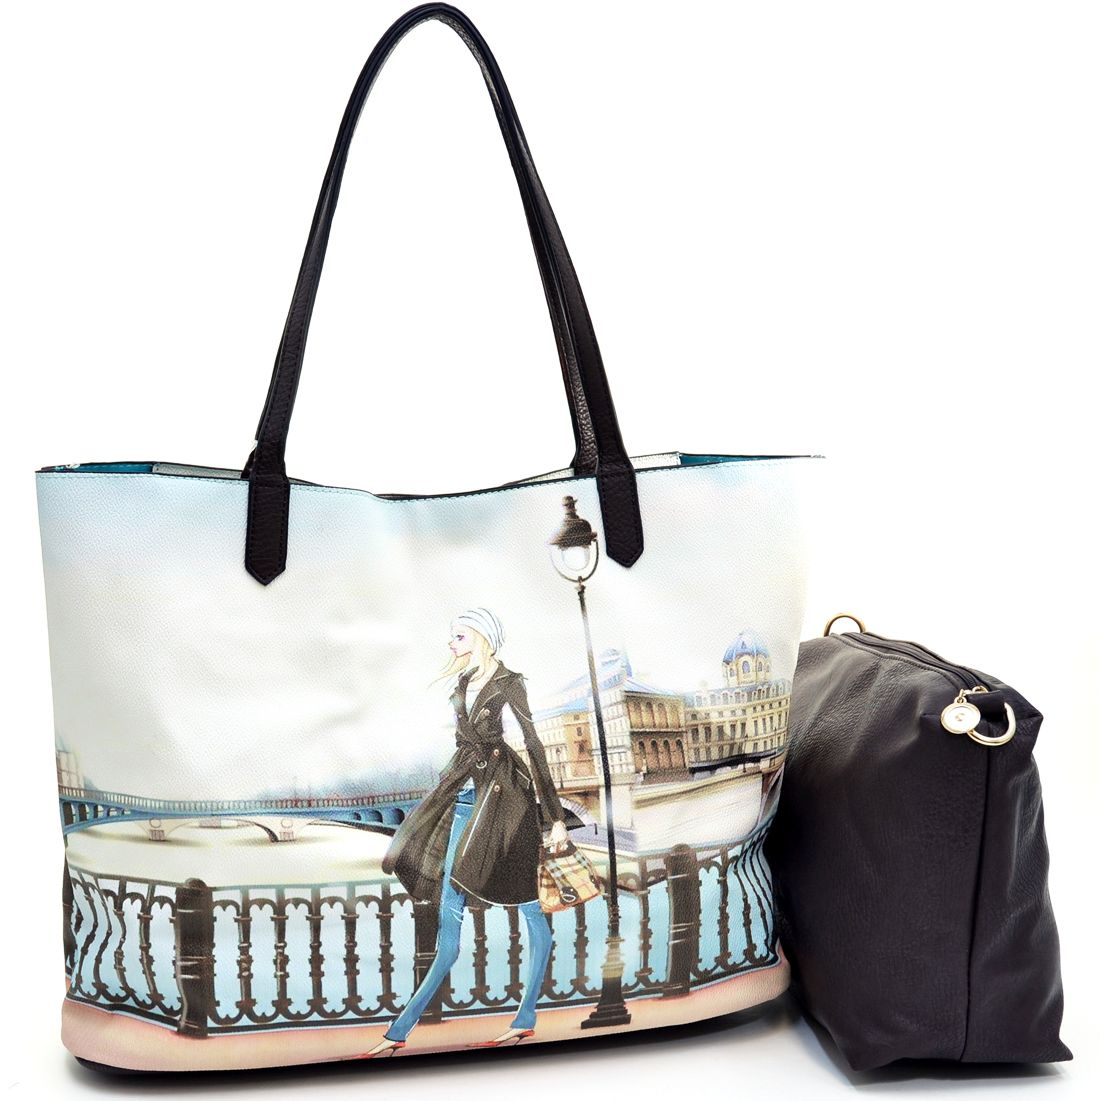 Item# Item Number:TP-61258B This large tote bag is a fun accessory to have when you are traveling. The art design on the front provides a nice escape to the feeling of being on vacation, with its natural and realistic colors. Included inside is a cosmetic bag and bonus shoulder strap to easily ...